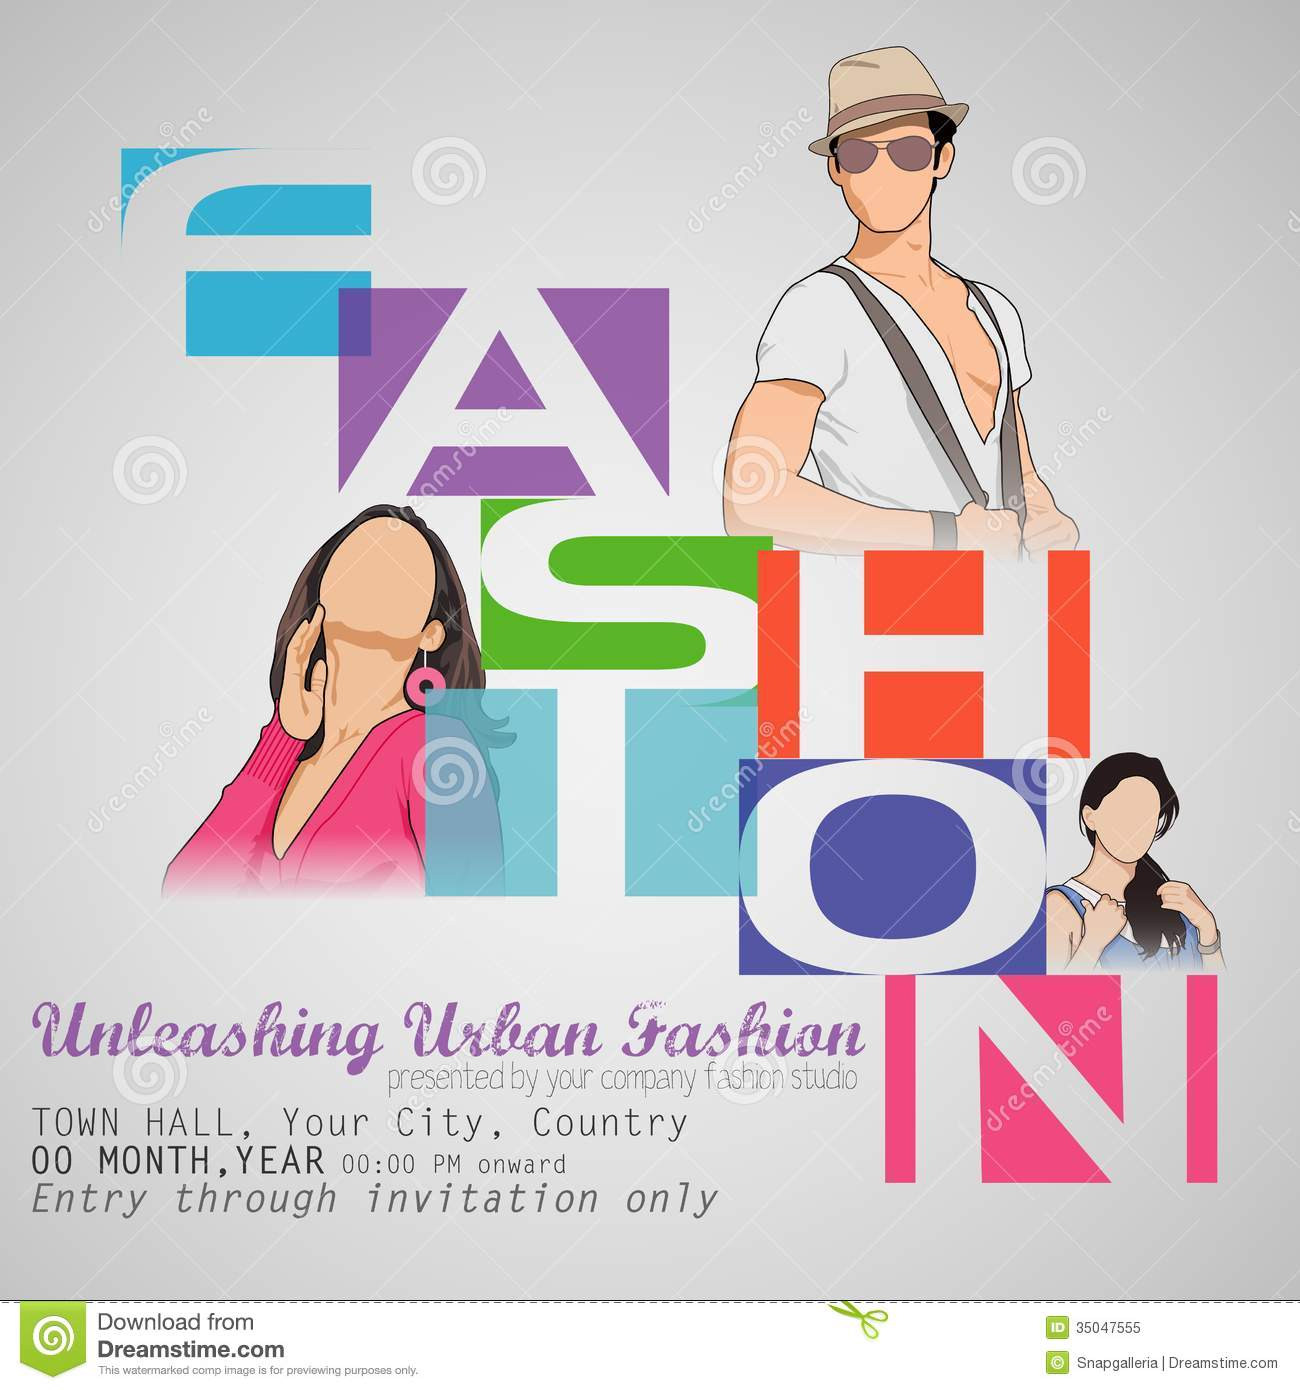 Doc620861 Fashion Design Posters 17 Best ideas about Fashion – Fashion Design Posters